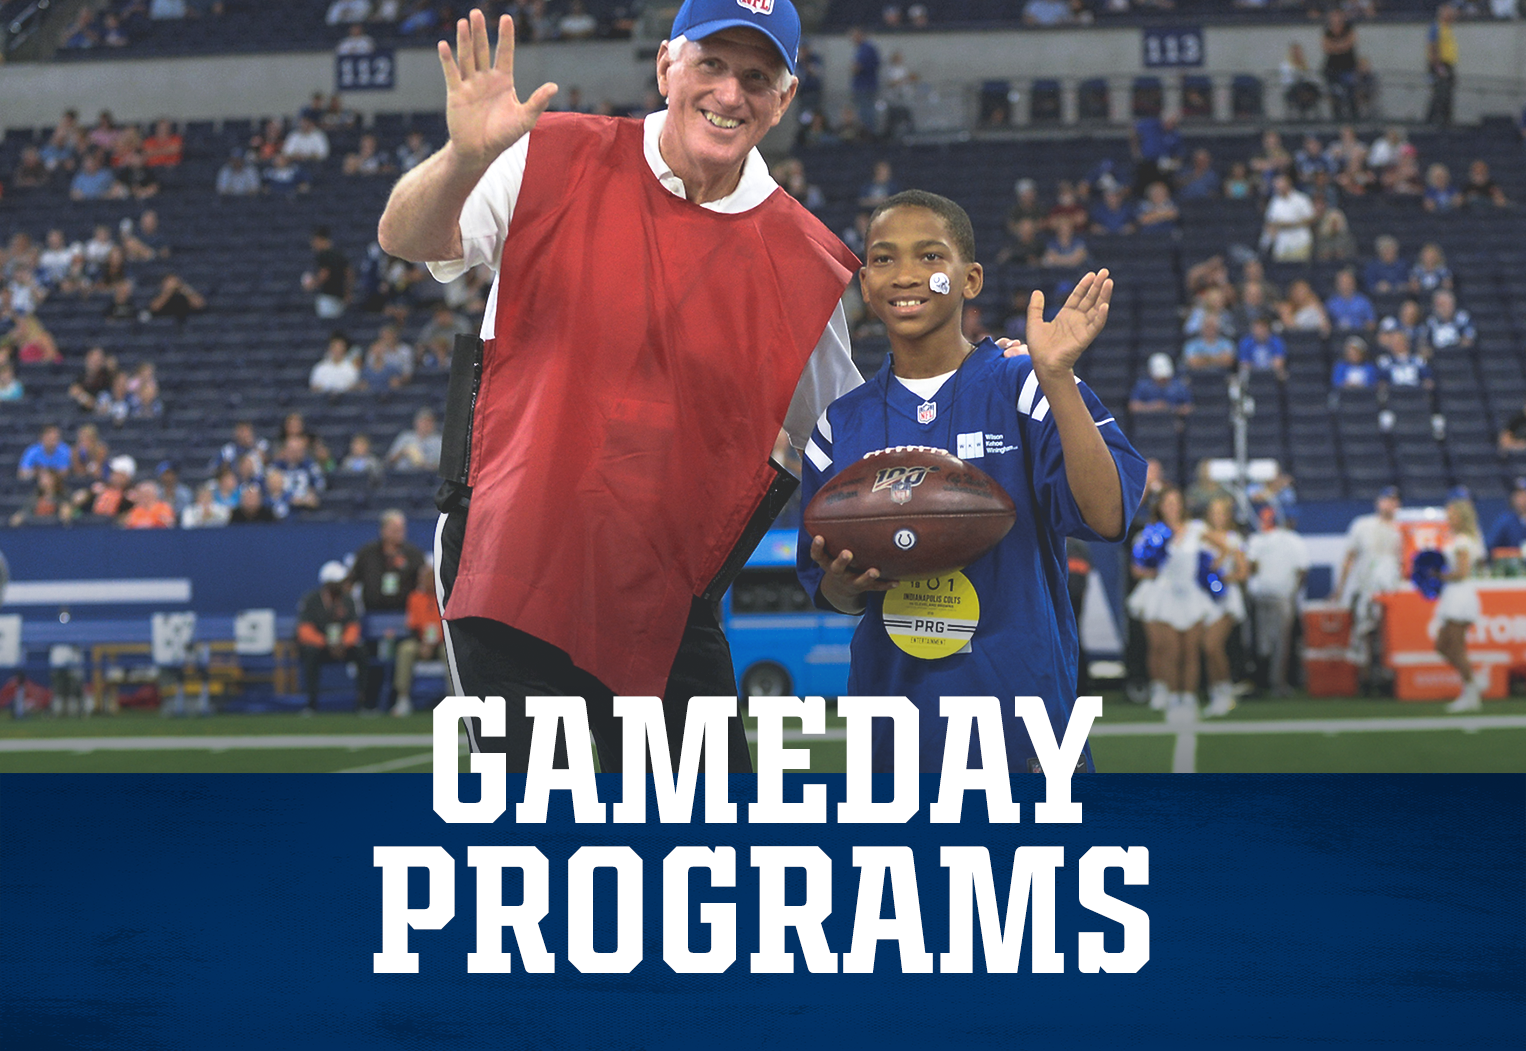 Indianapolis Colts Gameday Programs